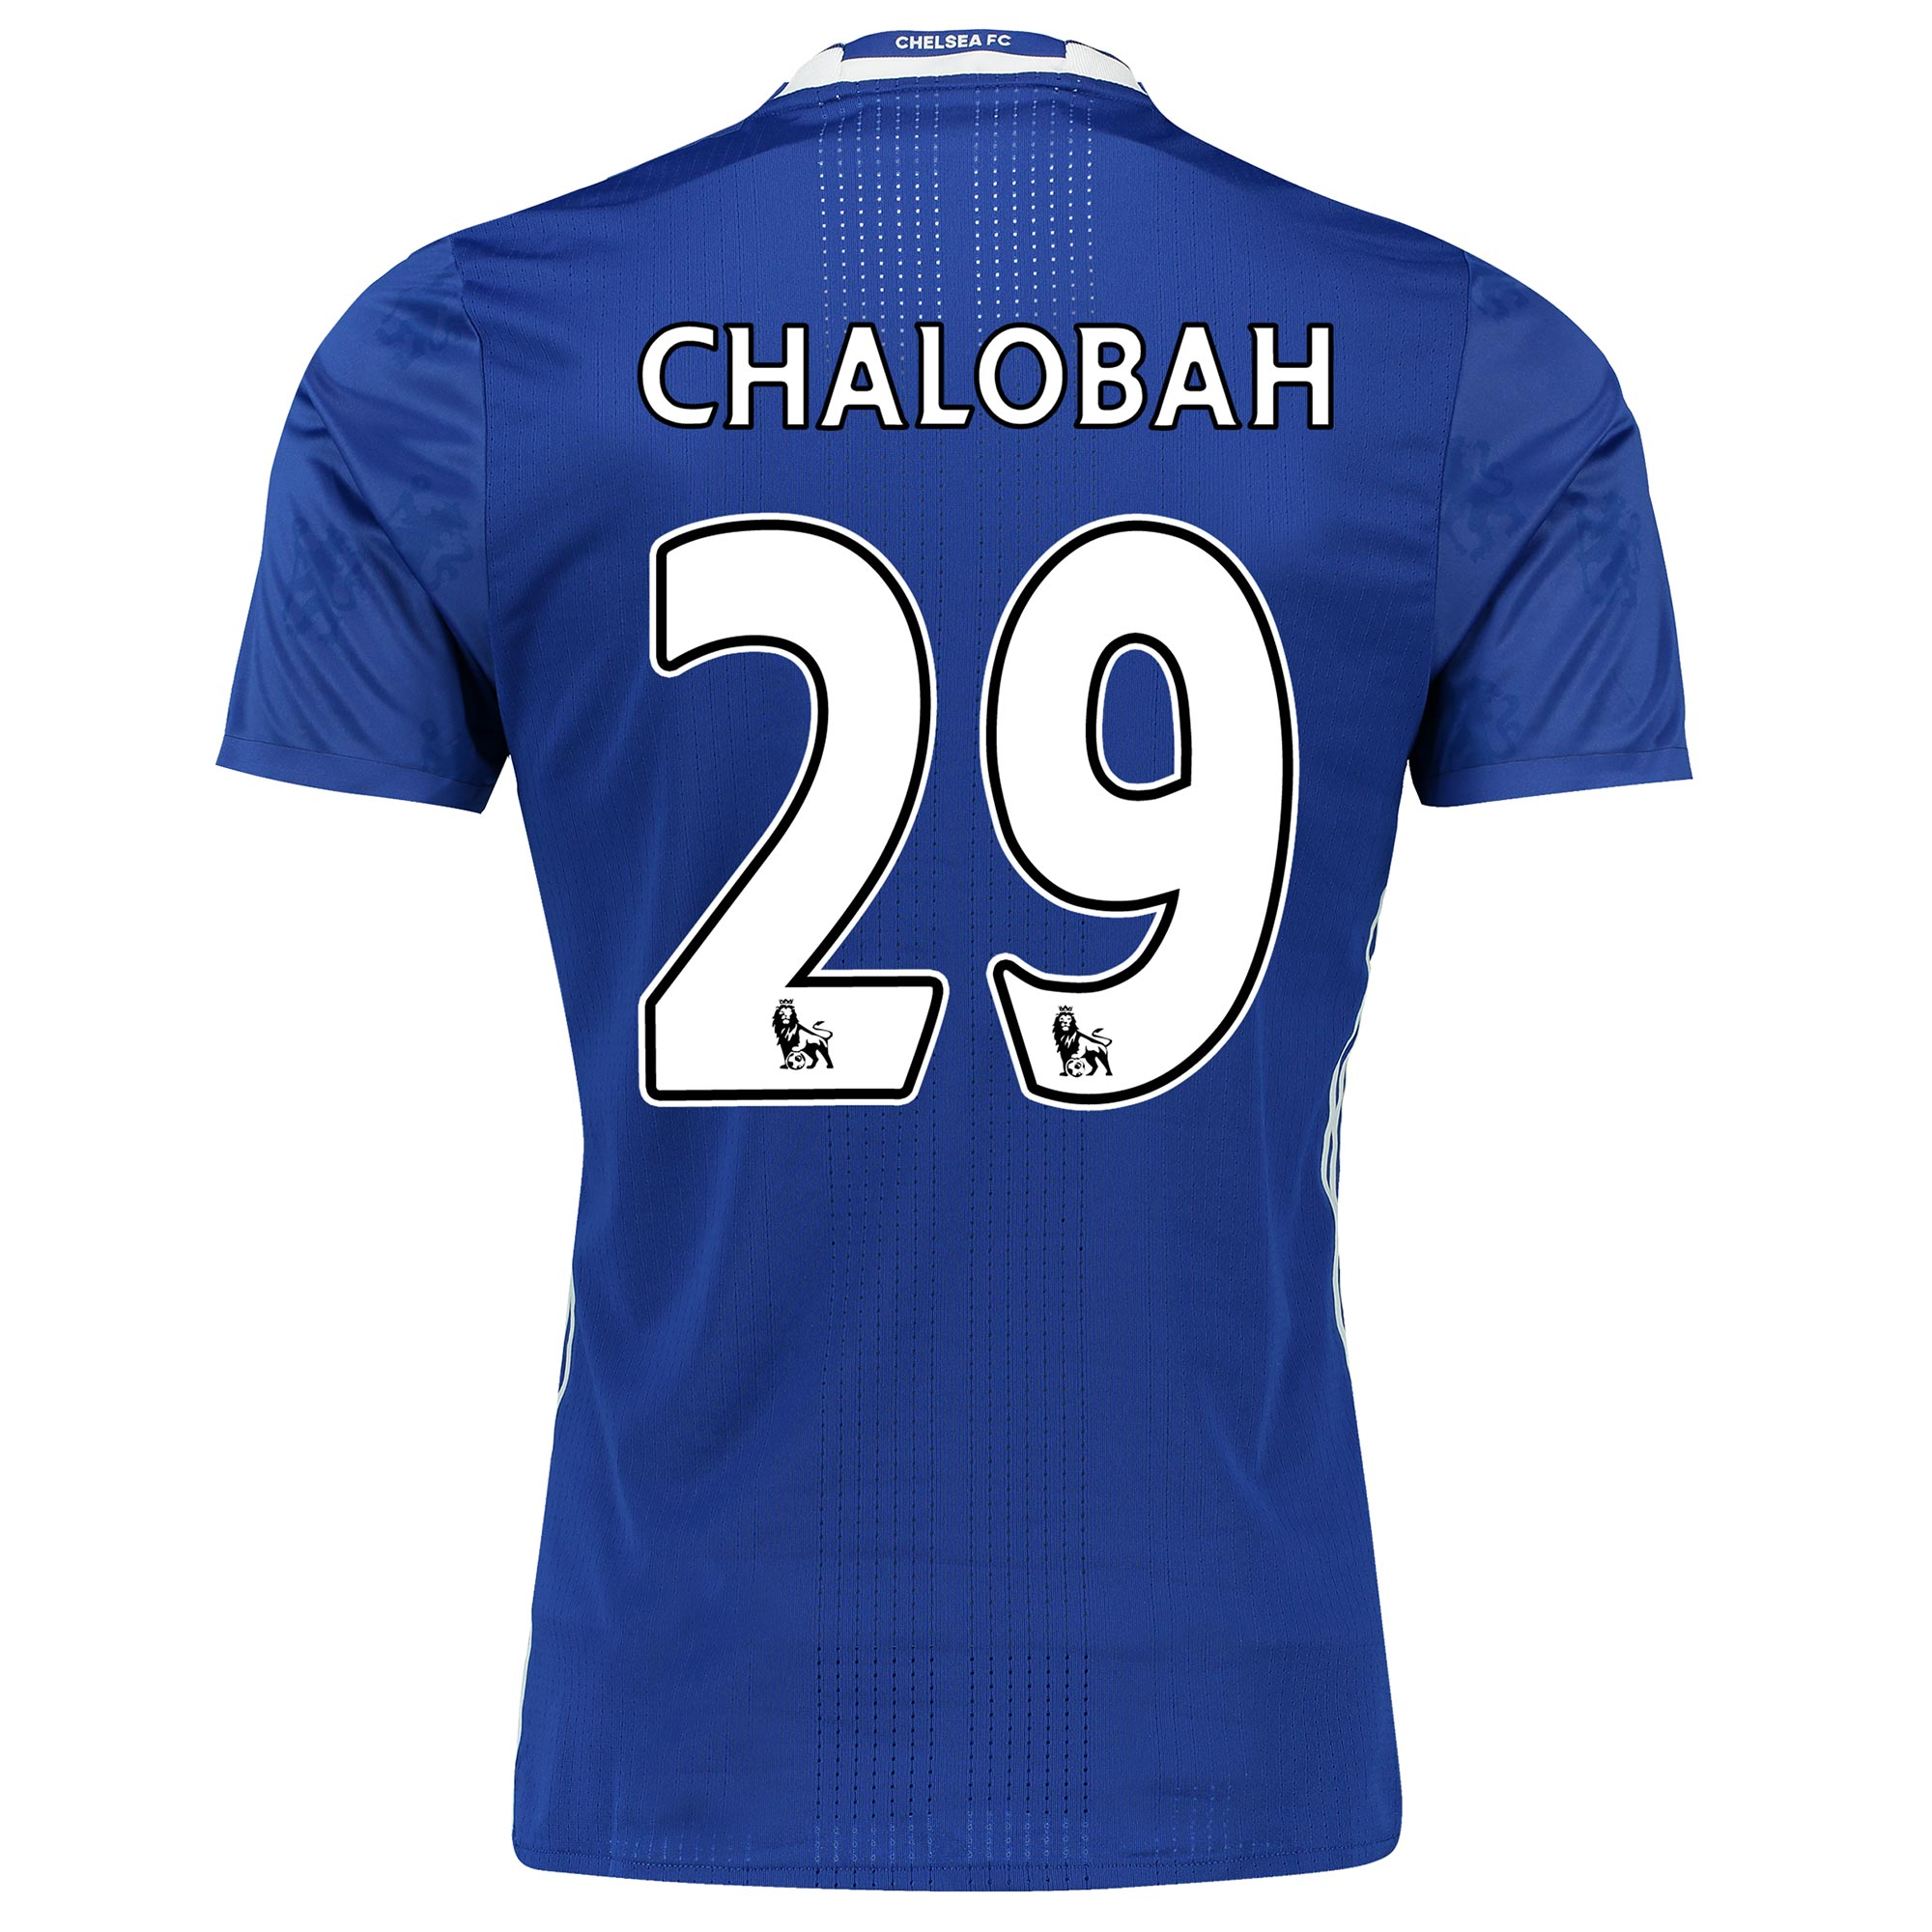 Shop Chalobah Printed Shirts